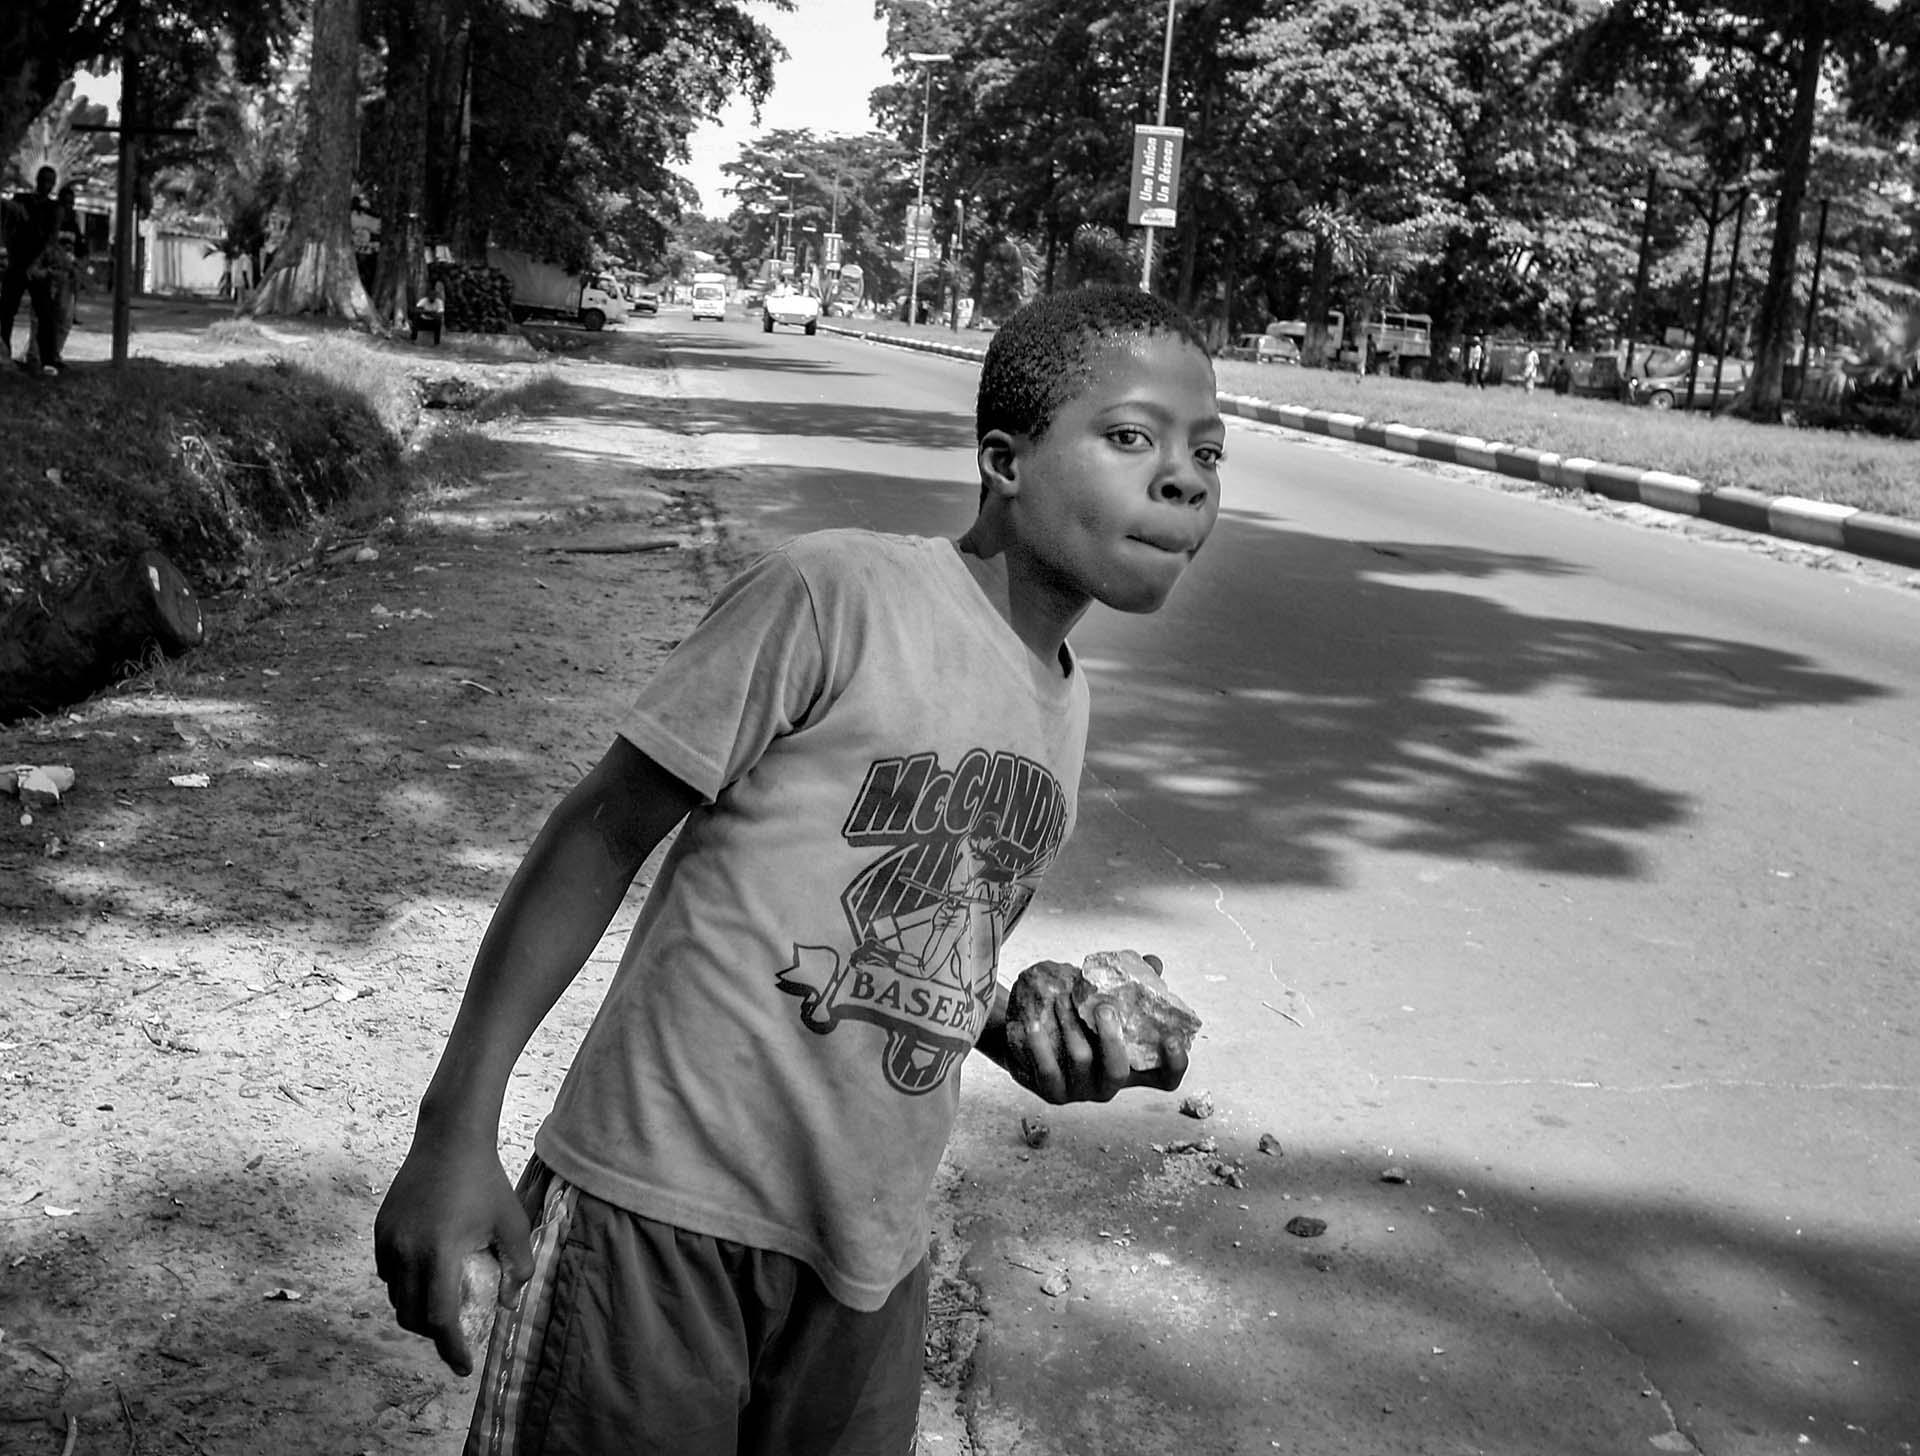 A Congolese youth looks for an opportunity to throw his rocks at police on the main street of Kinshasa. The day after Joseph Kabila was declared as the president, the air is tense in the capital.